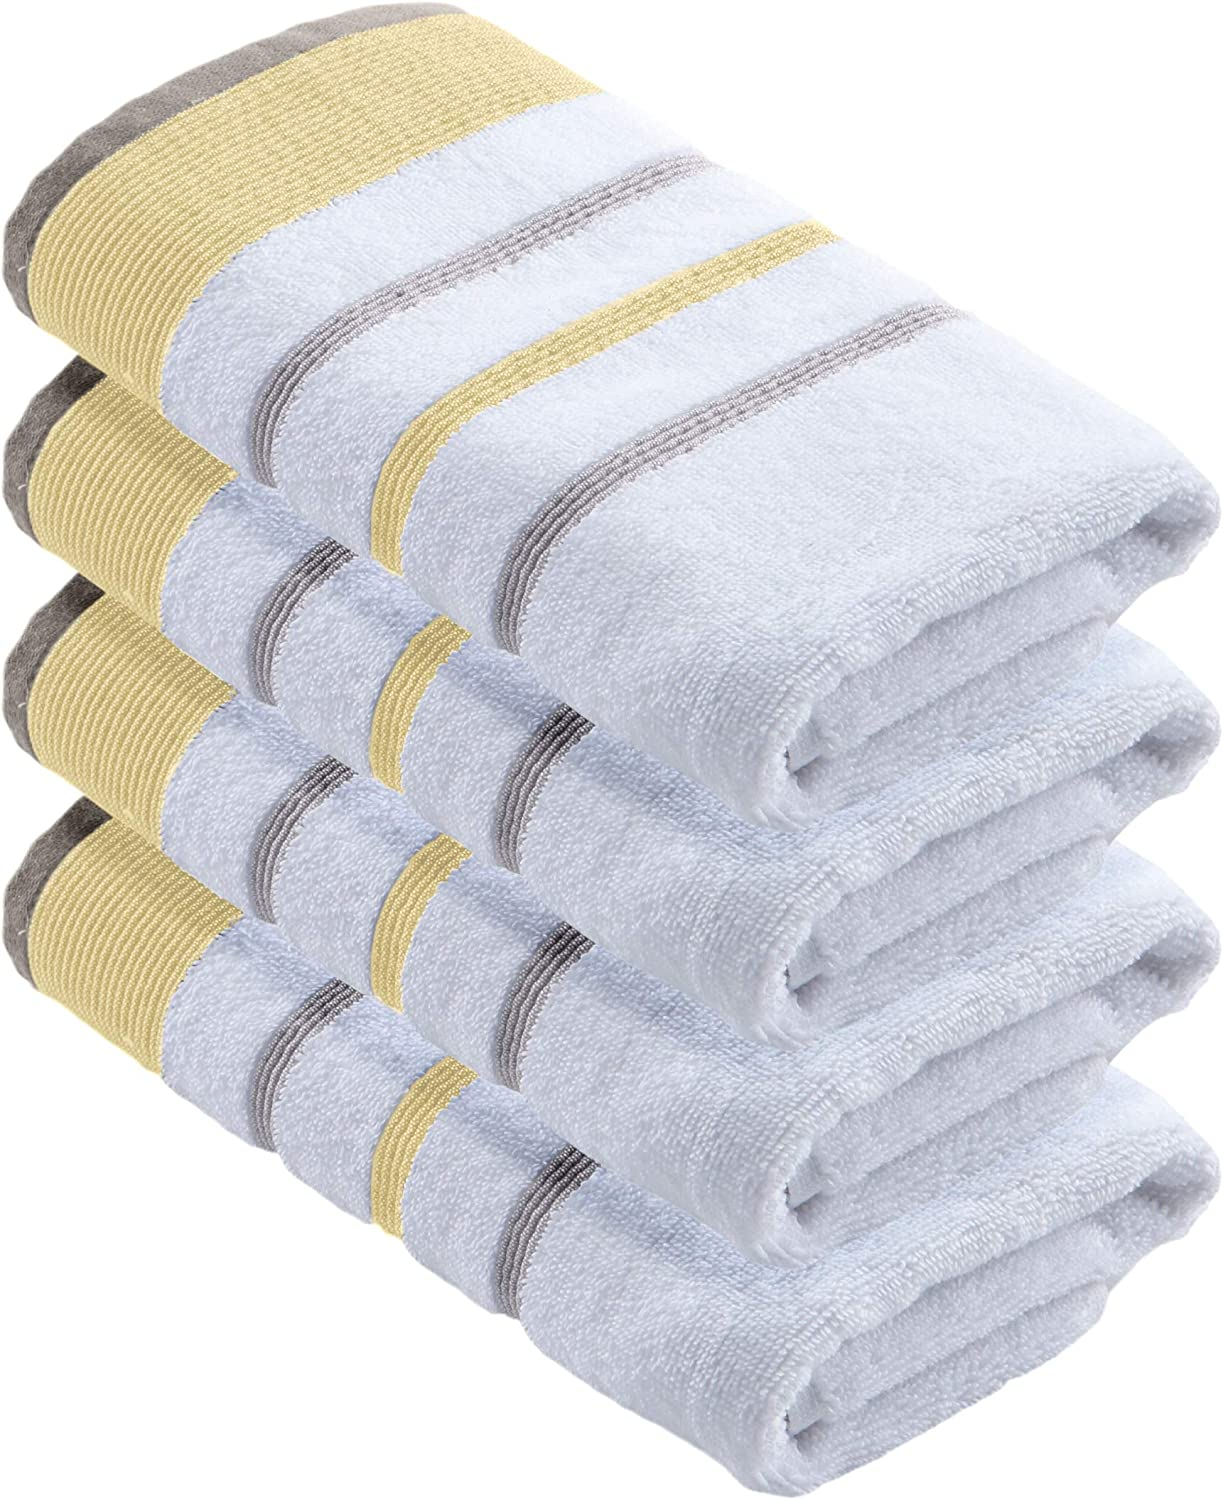 100% Turkish Cotton, Striped Hand Towel Set (16 x 30 inches) Oversized Decorative Luxury Hand Towels. Noelle Collection (Set of 4, Gold / Grey)